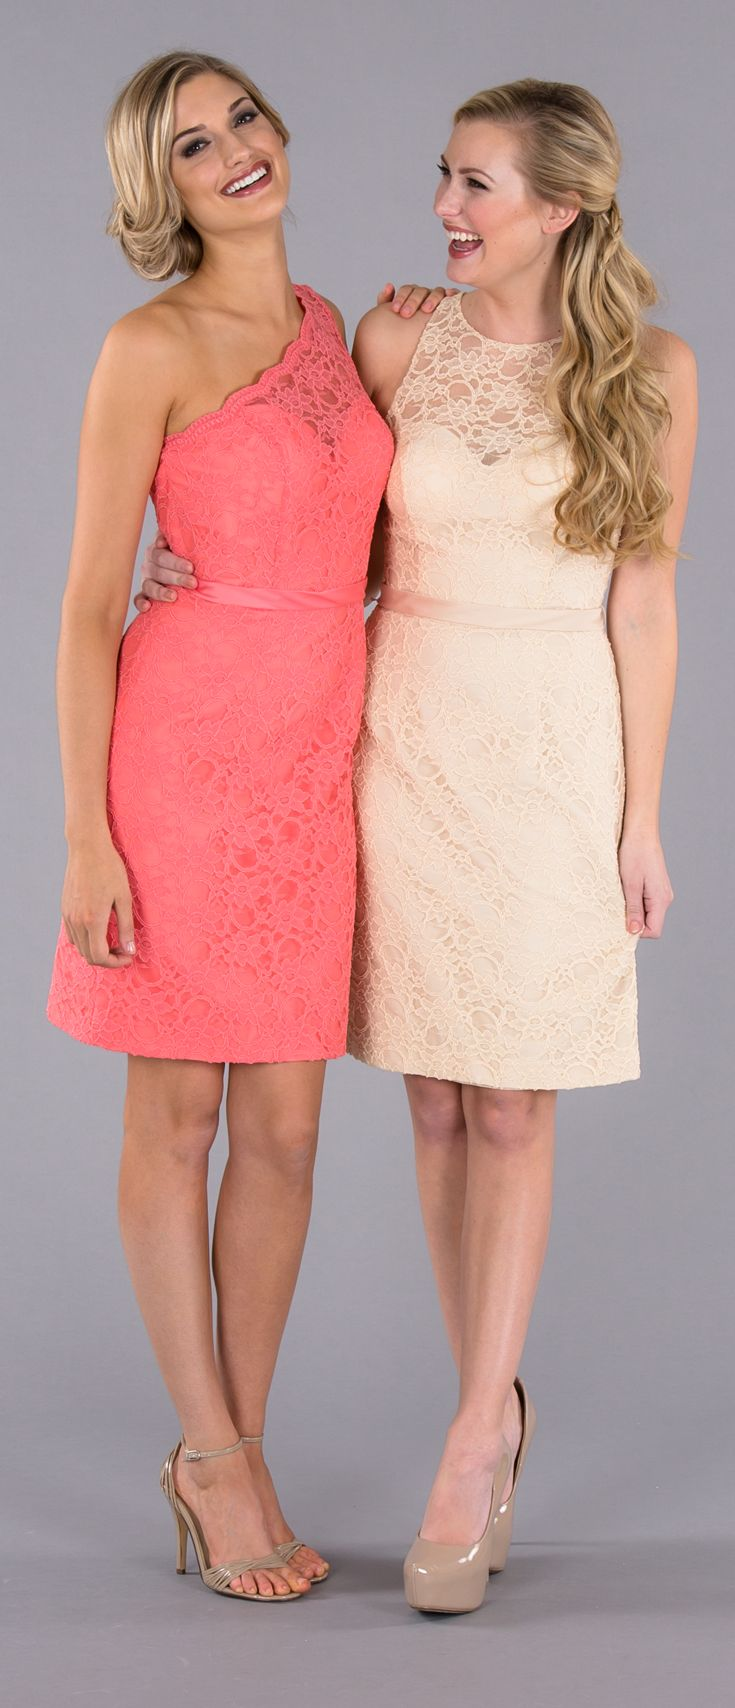 Short lace bridesmaid dresses that are perfect for a mix and match look! Check out our one-shoulder style, high-neck style, and more!   Featured colors: Coral & Champagne